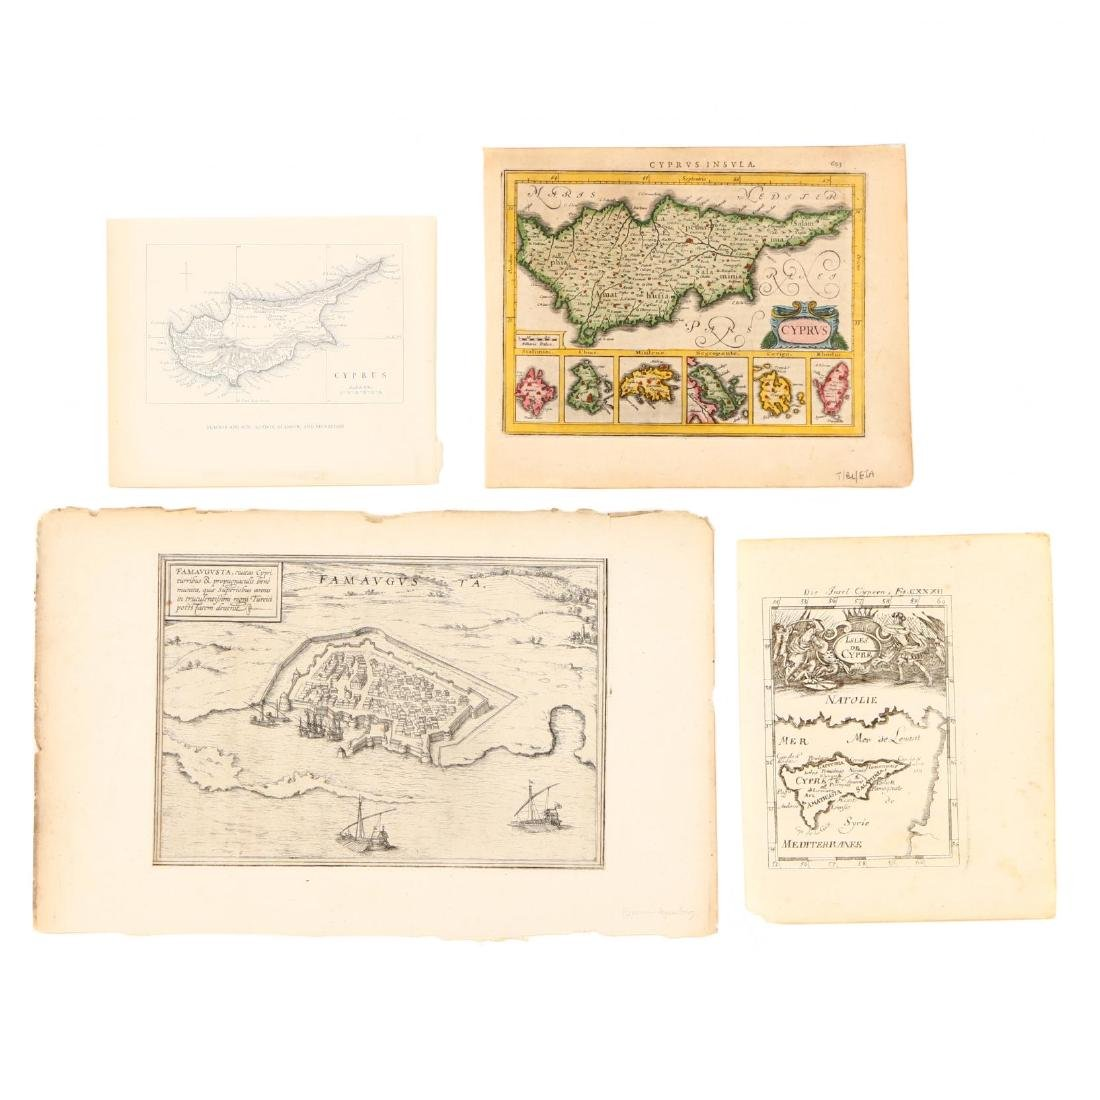 Four Small Antique Maps Pertaining to Cyprus